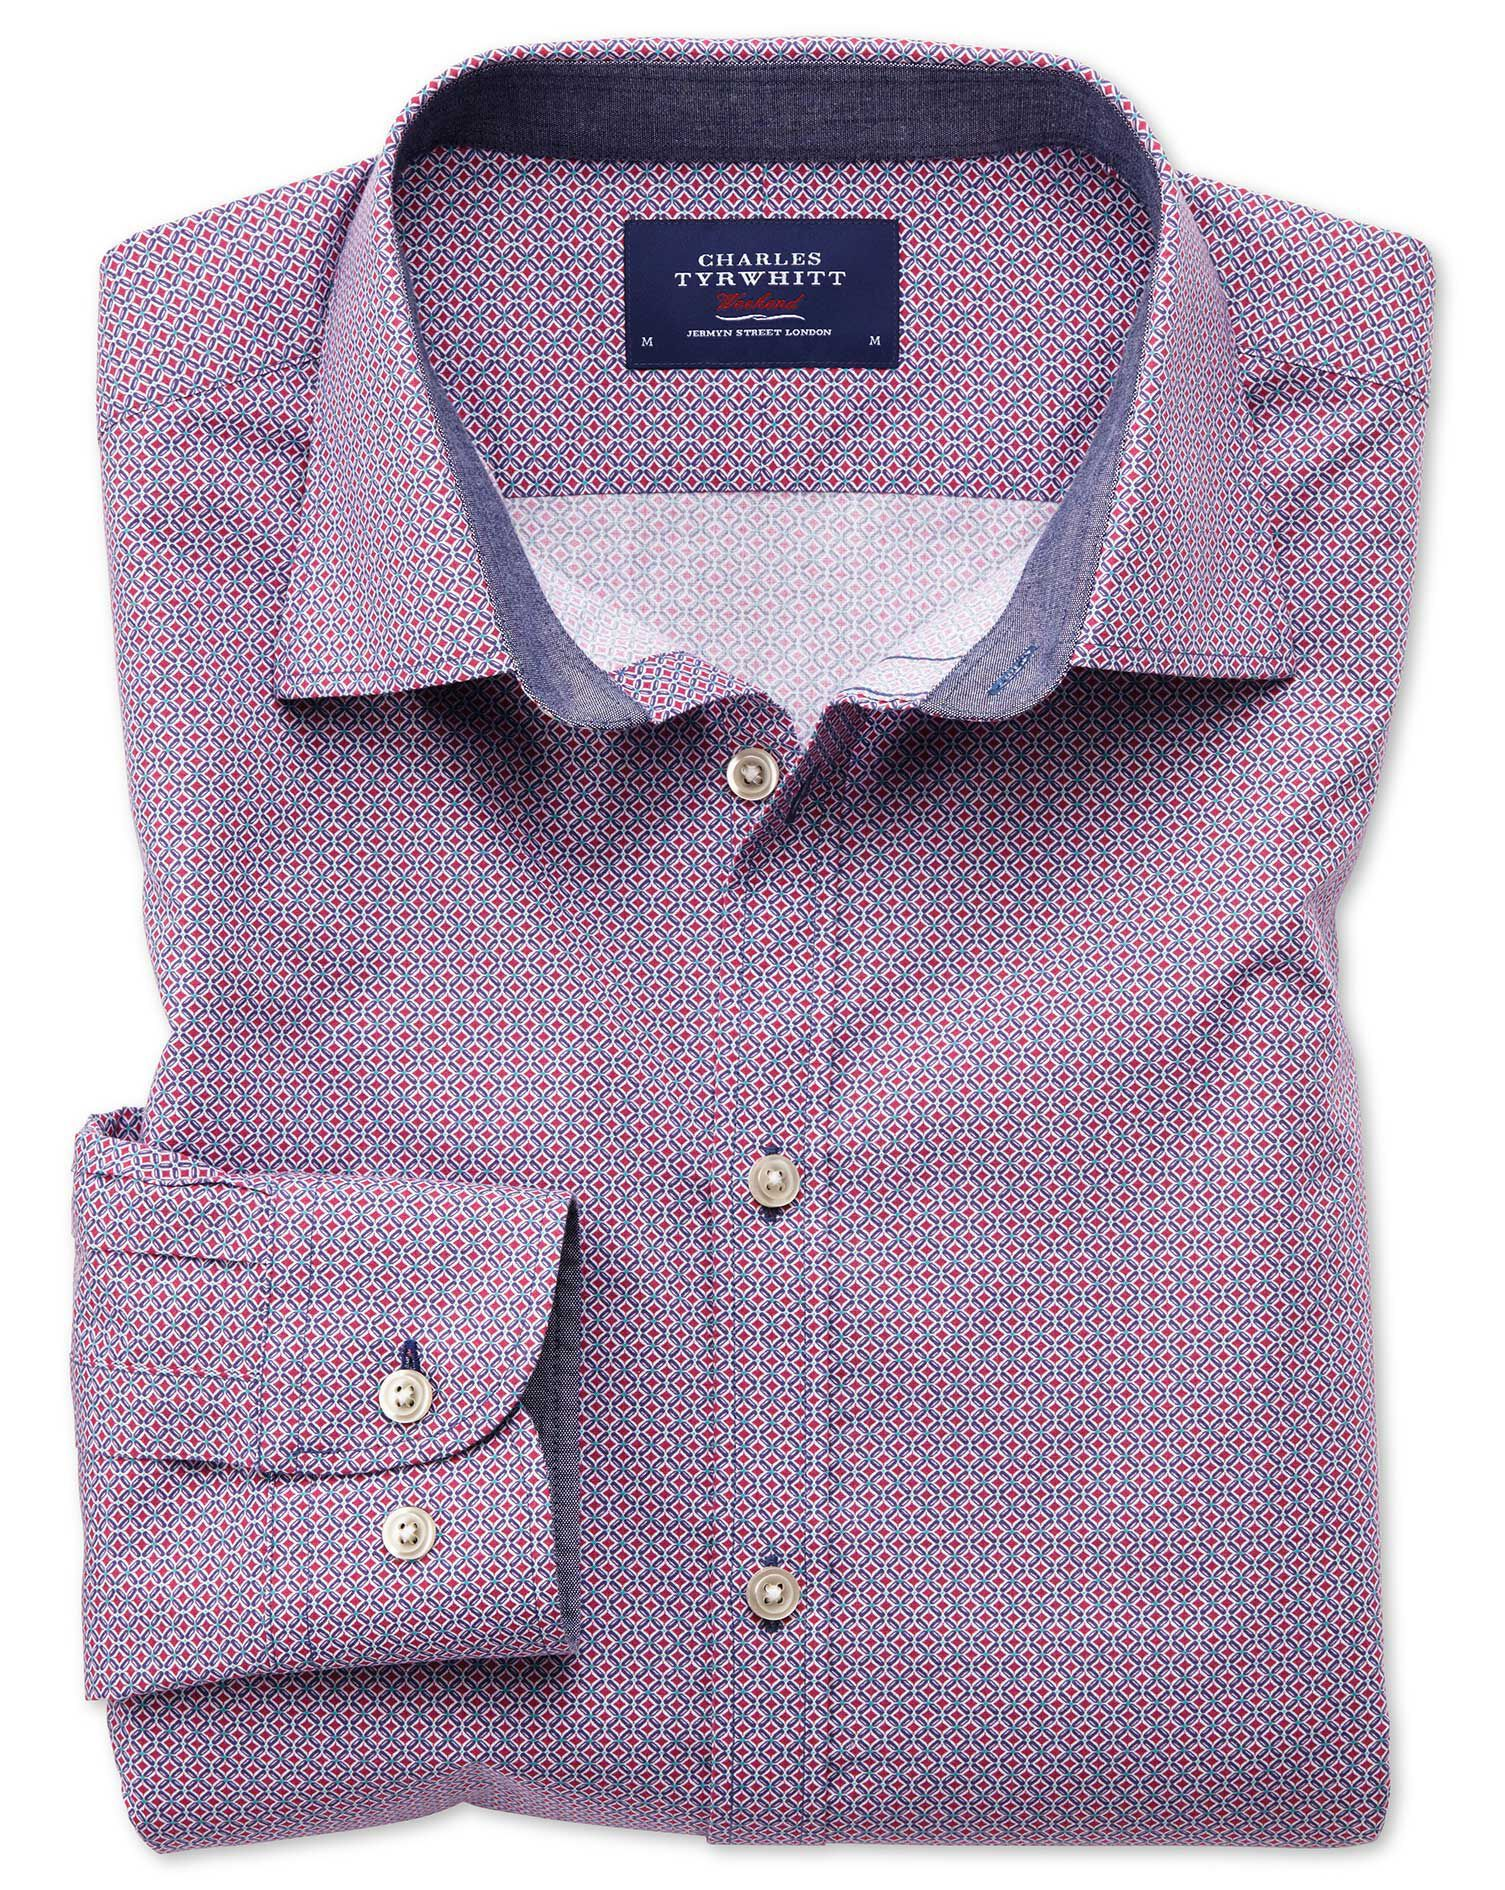 Slim Fit Magenta and Blue Print Cotton Shirt Single Cuff Size XS by Charles Tyrwhitt